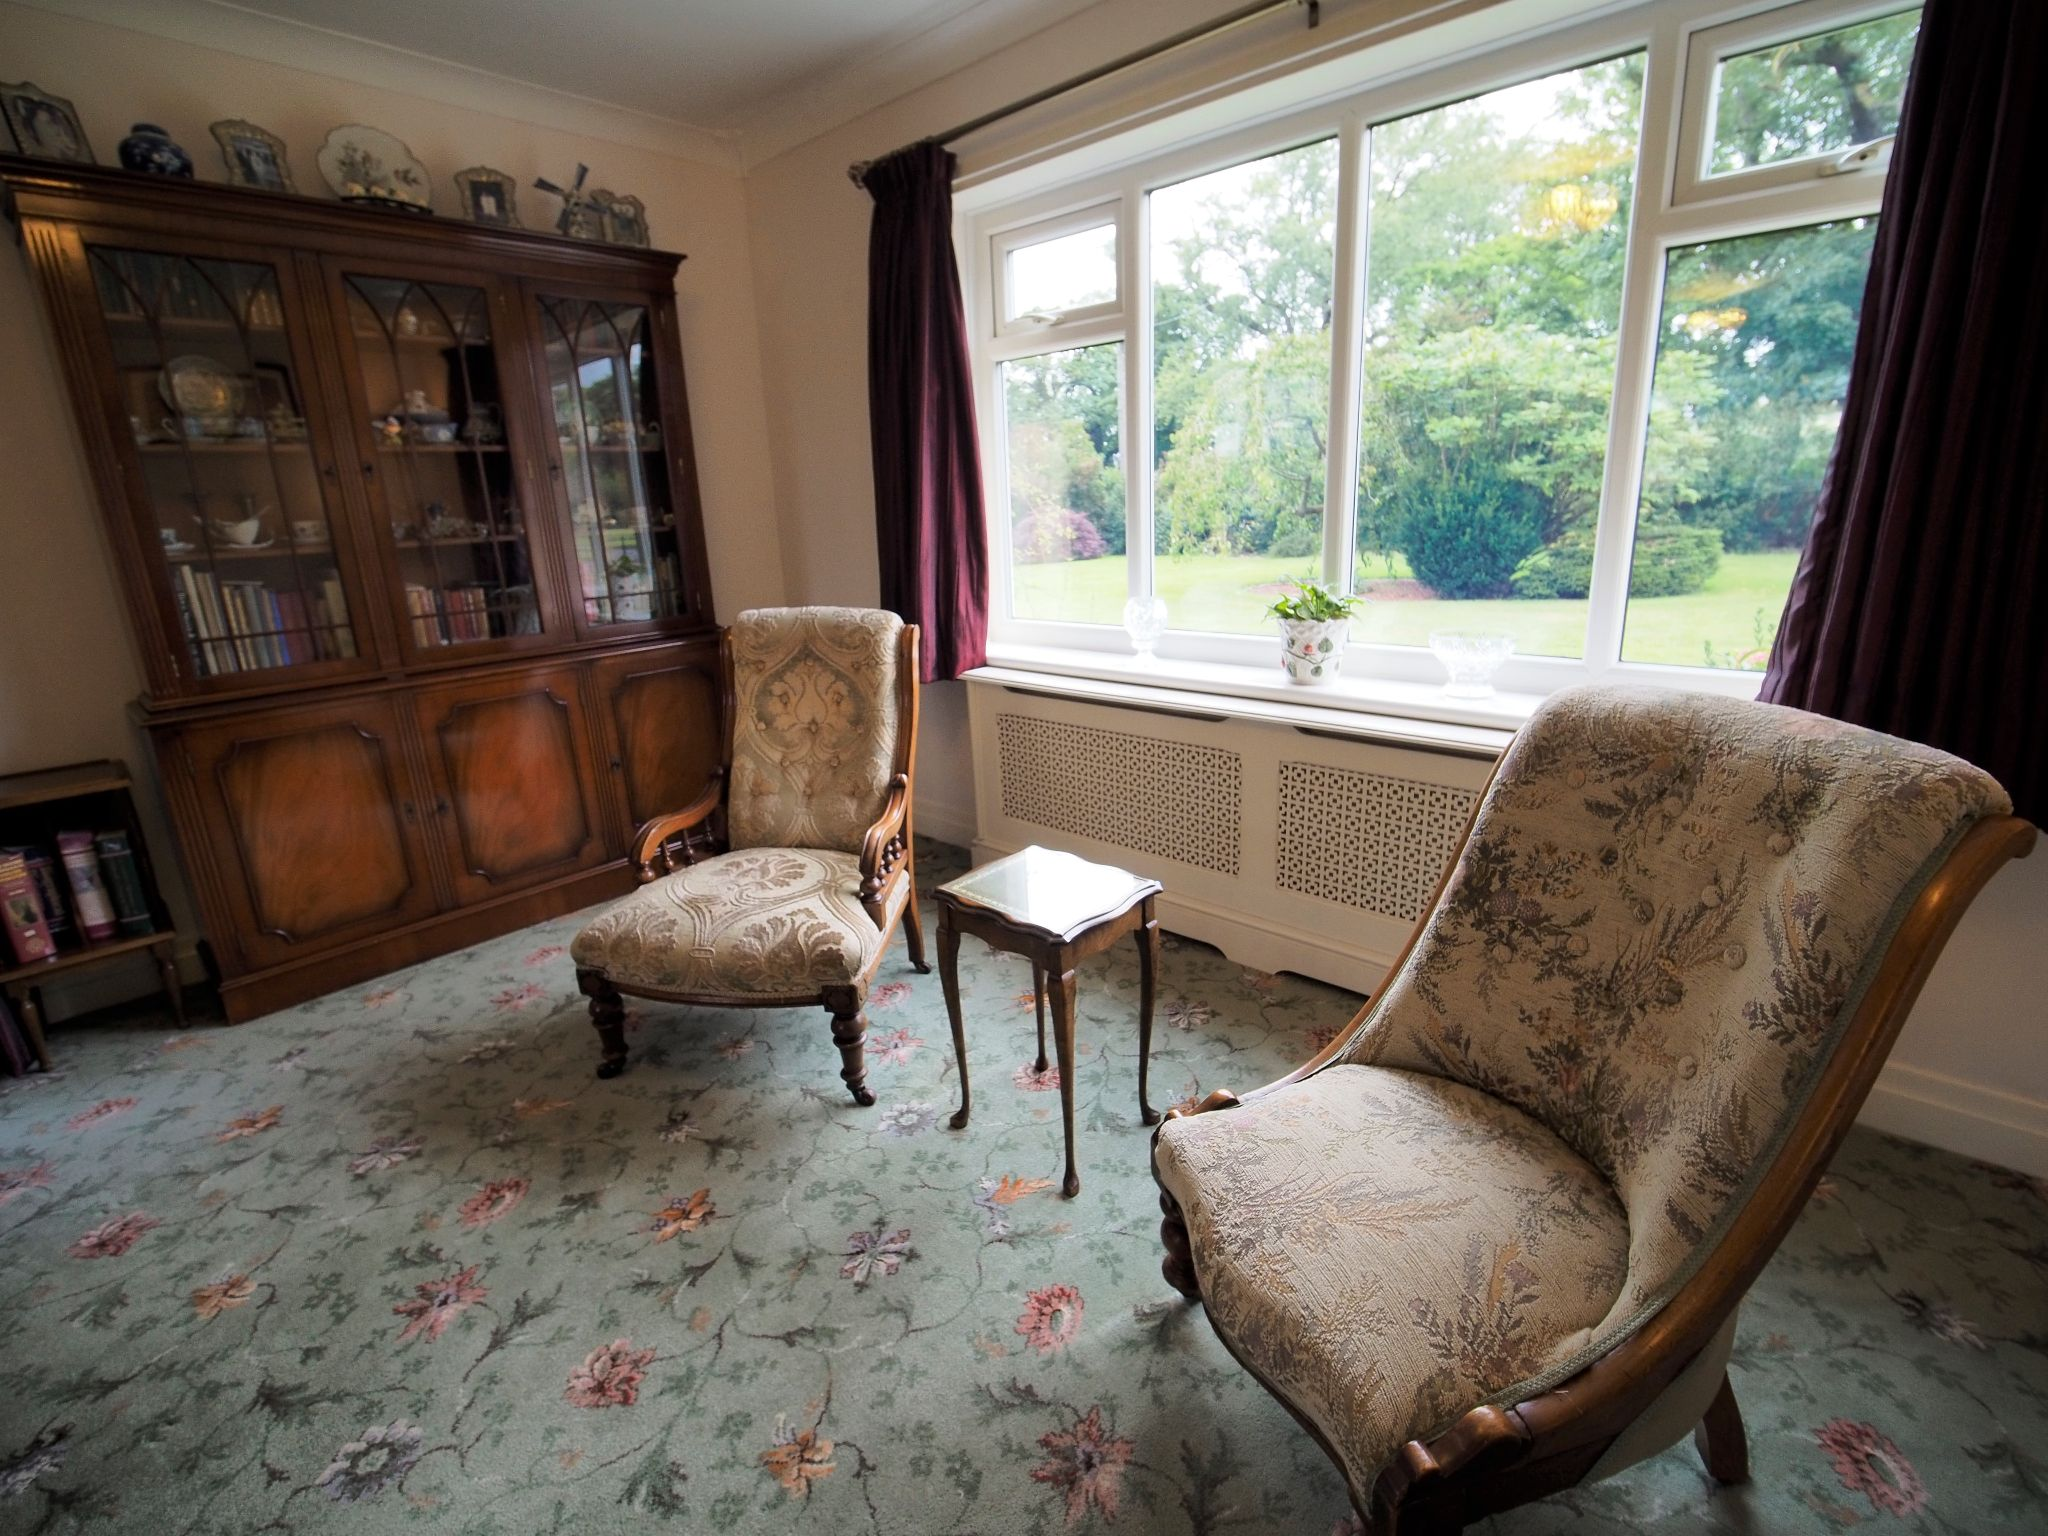 4 bedroom detached house For Sale in Willington - Lounge.